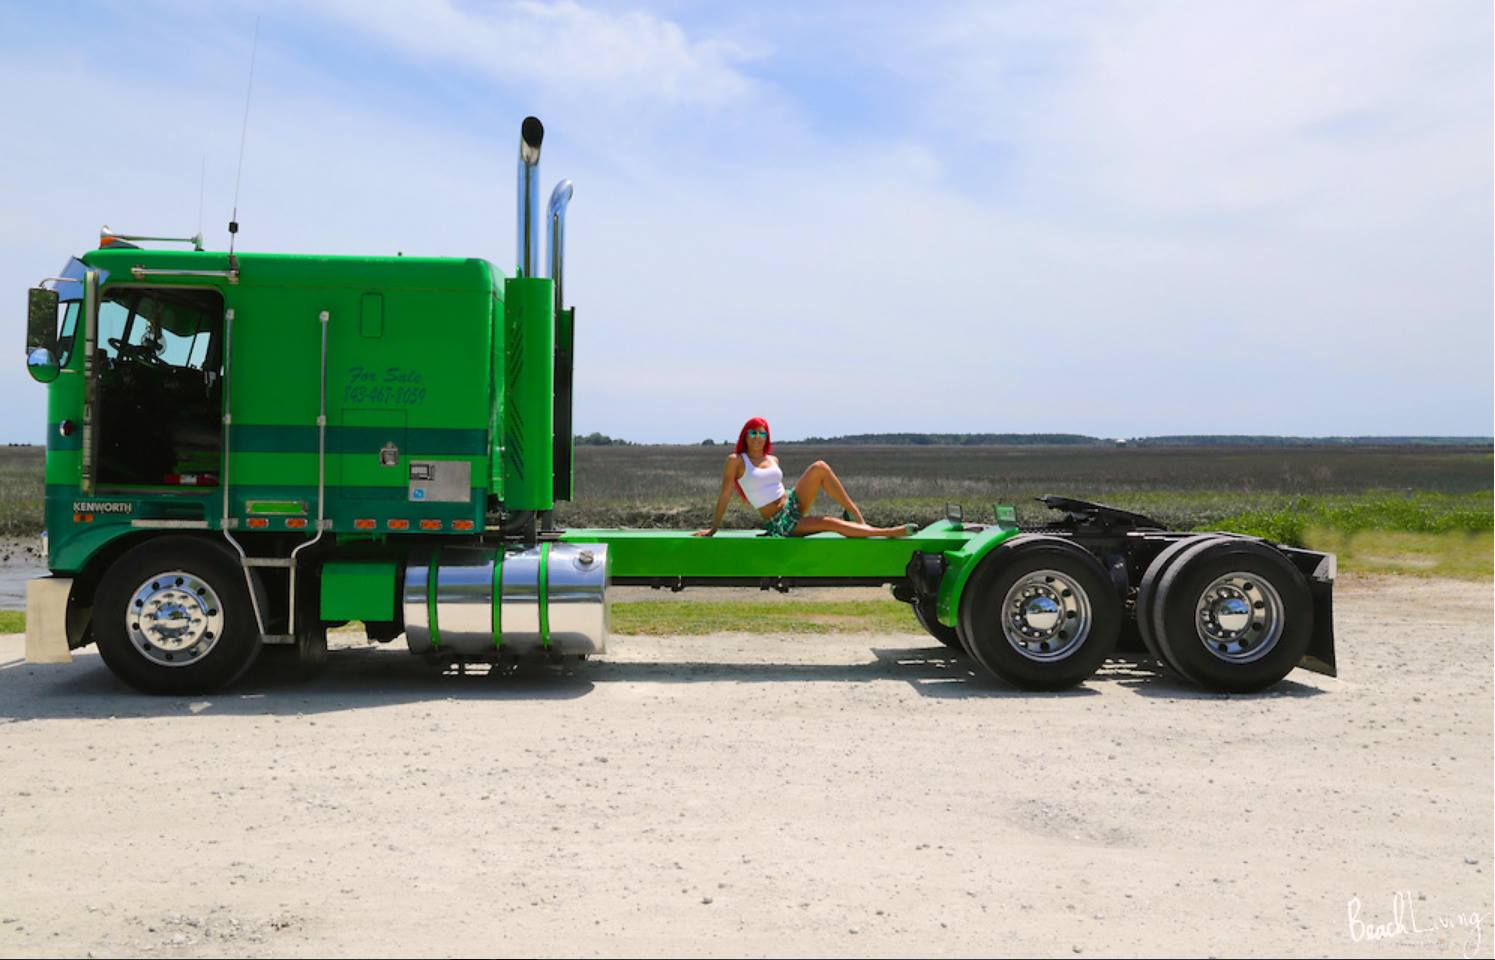 Hot-and-sexy-Whitney-Rose-Stevens-on-a-custom-Kenworth-Truck-Whitney-Rose-Stevens-models-for-2